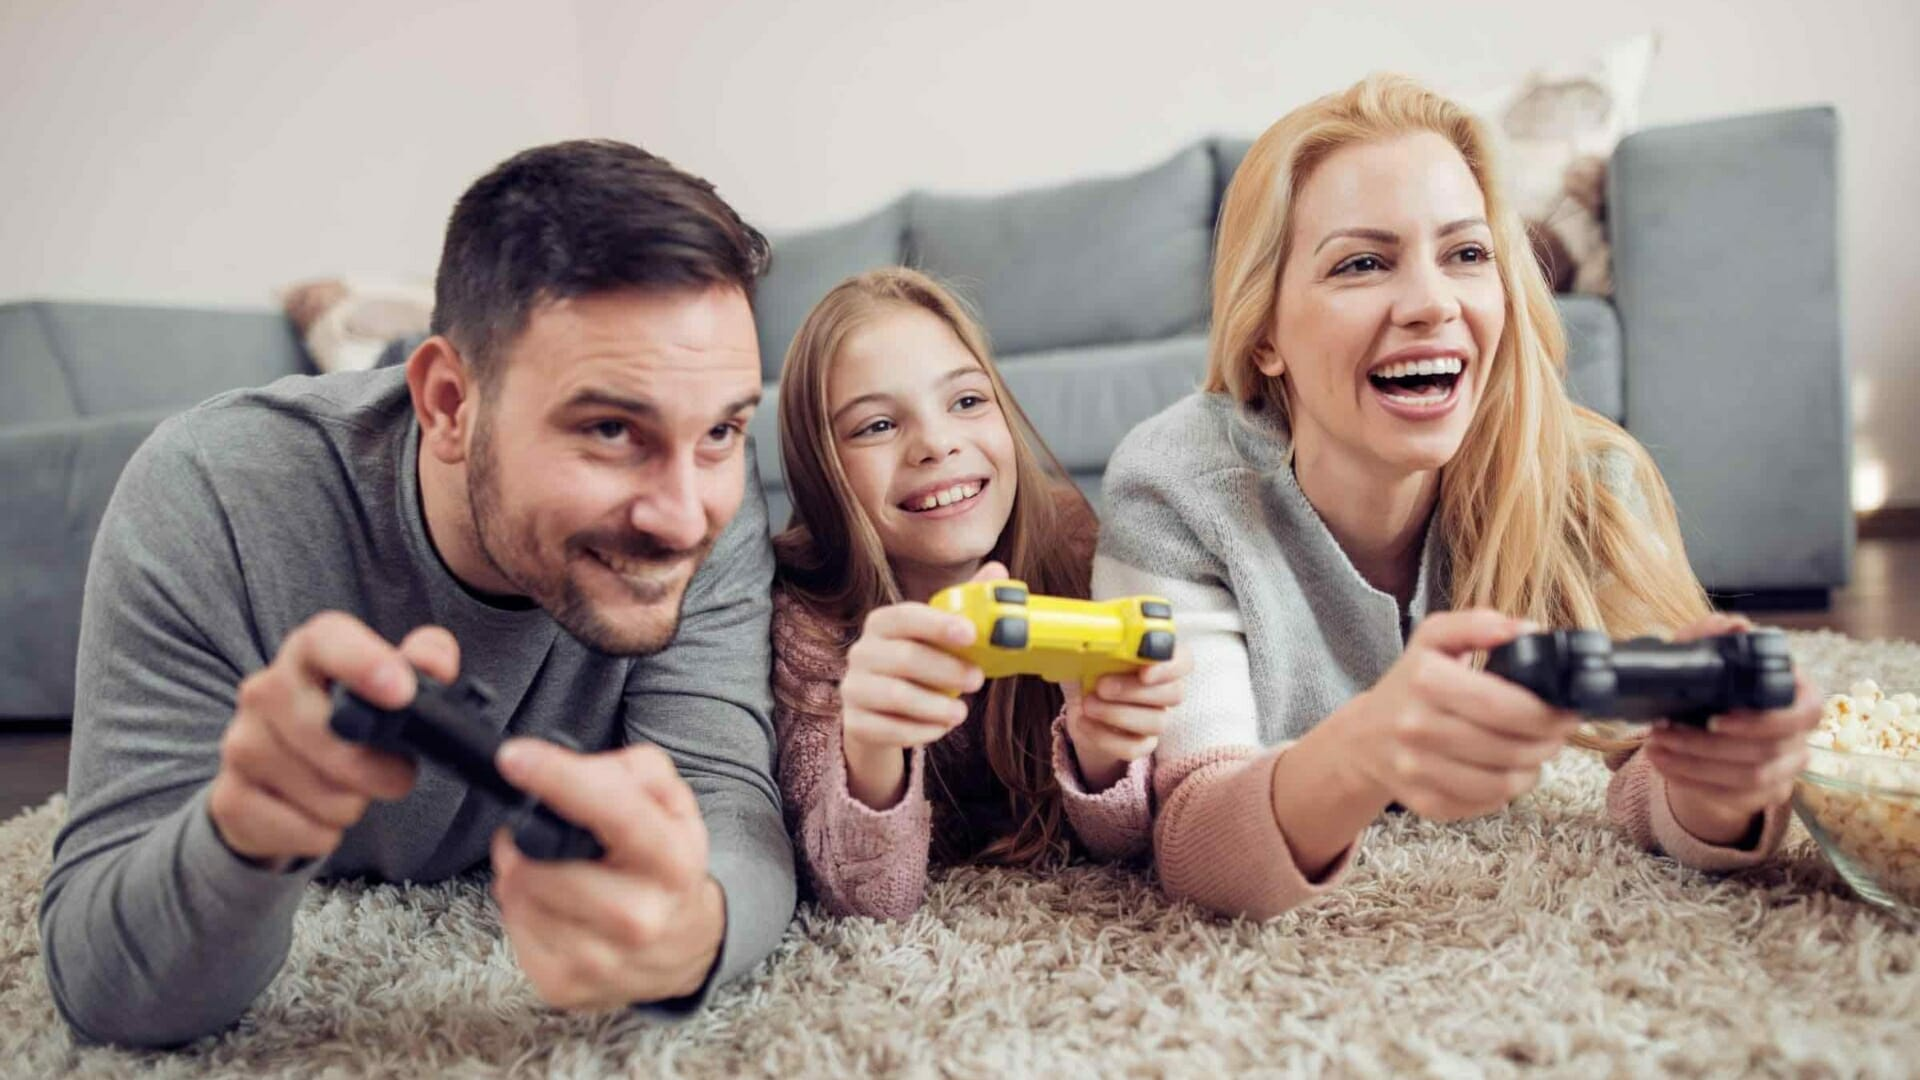 My Journey Merging Parenting, Children and Gaming Together